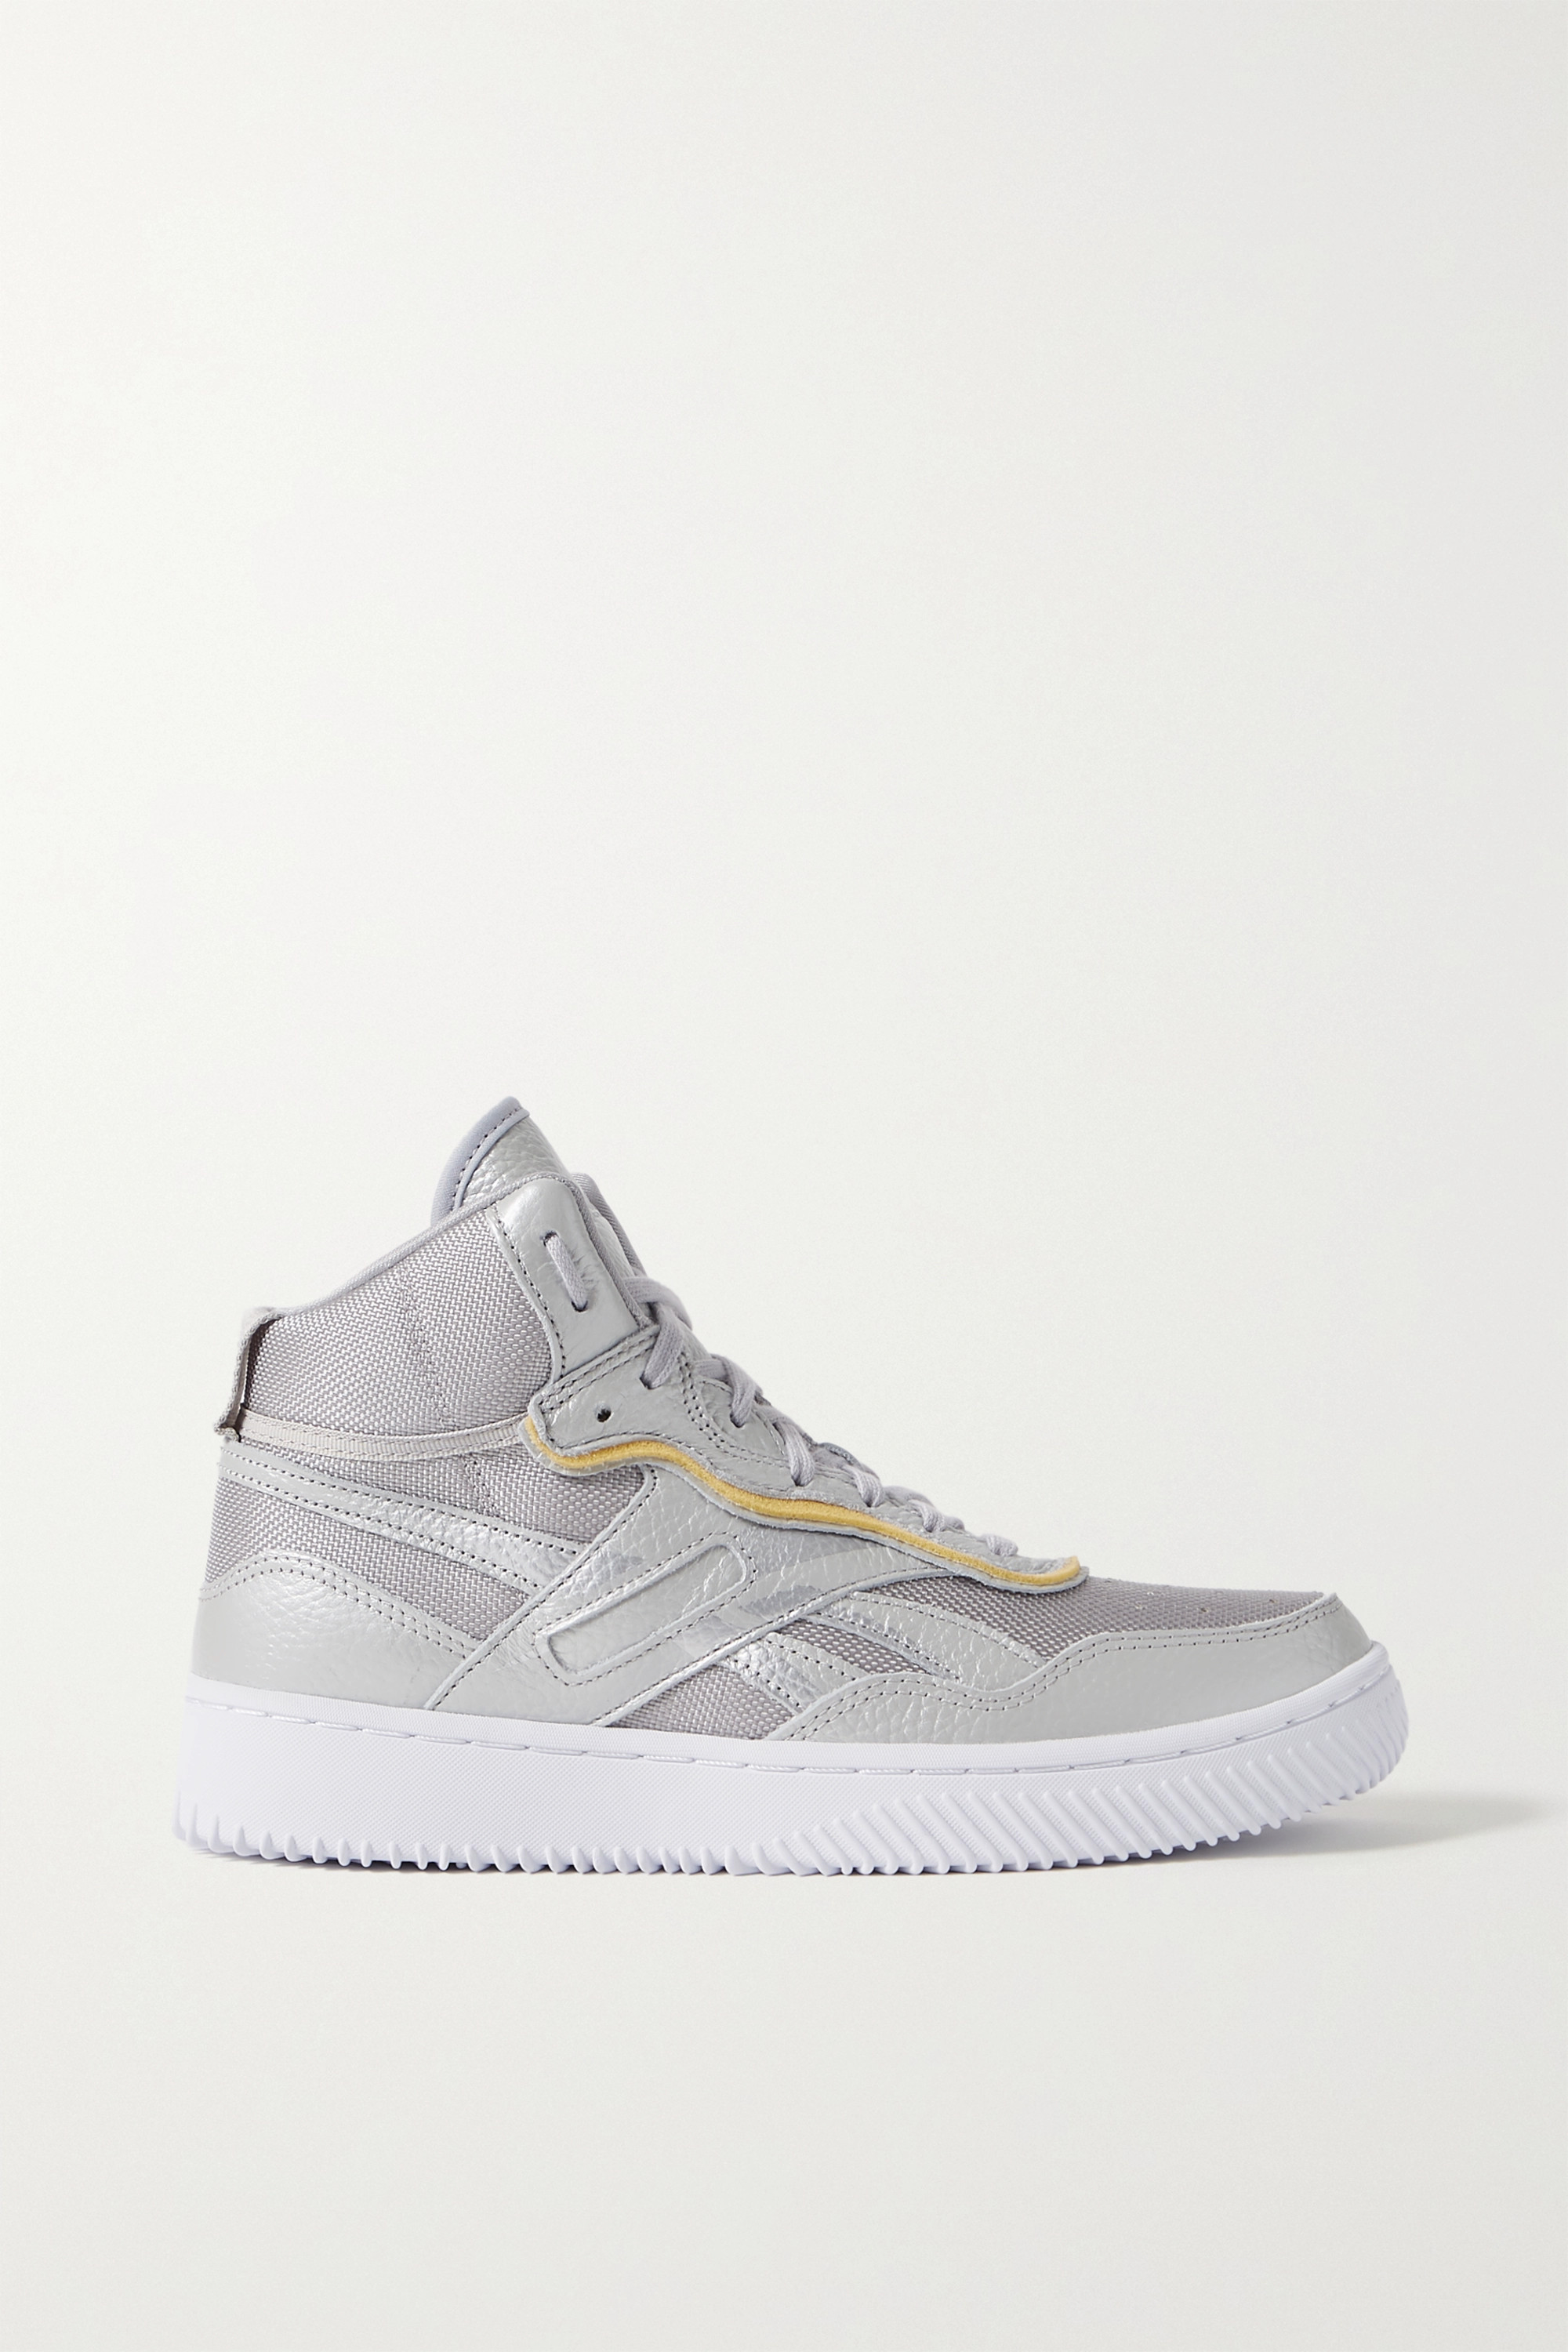 Reebok X Victoria Beckham Dual Court suede-trimmed metallic textured-leather and mesh sneakers